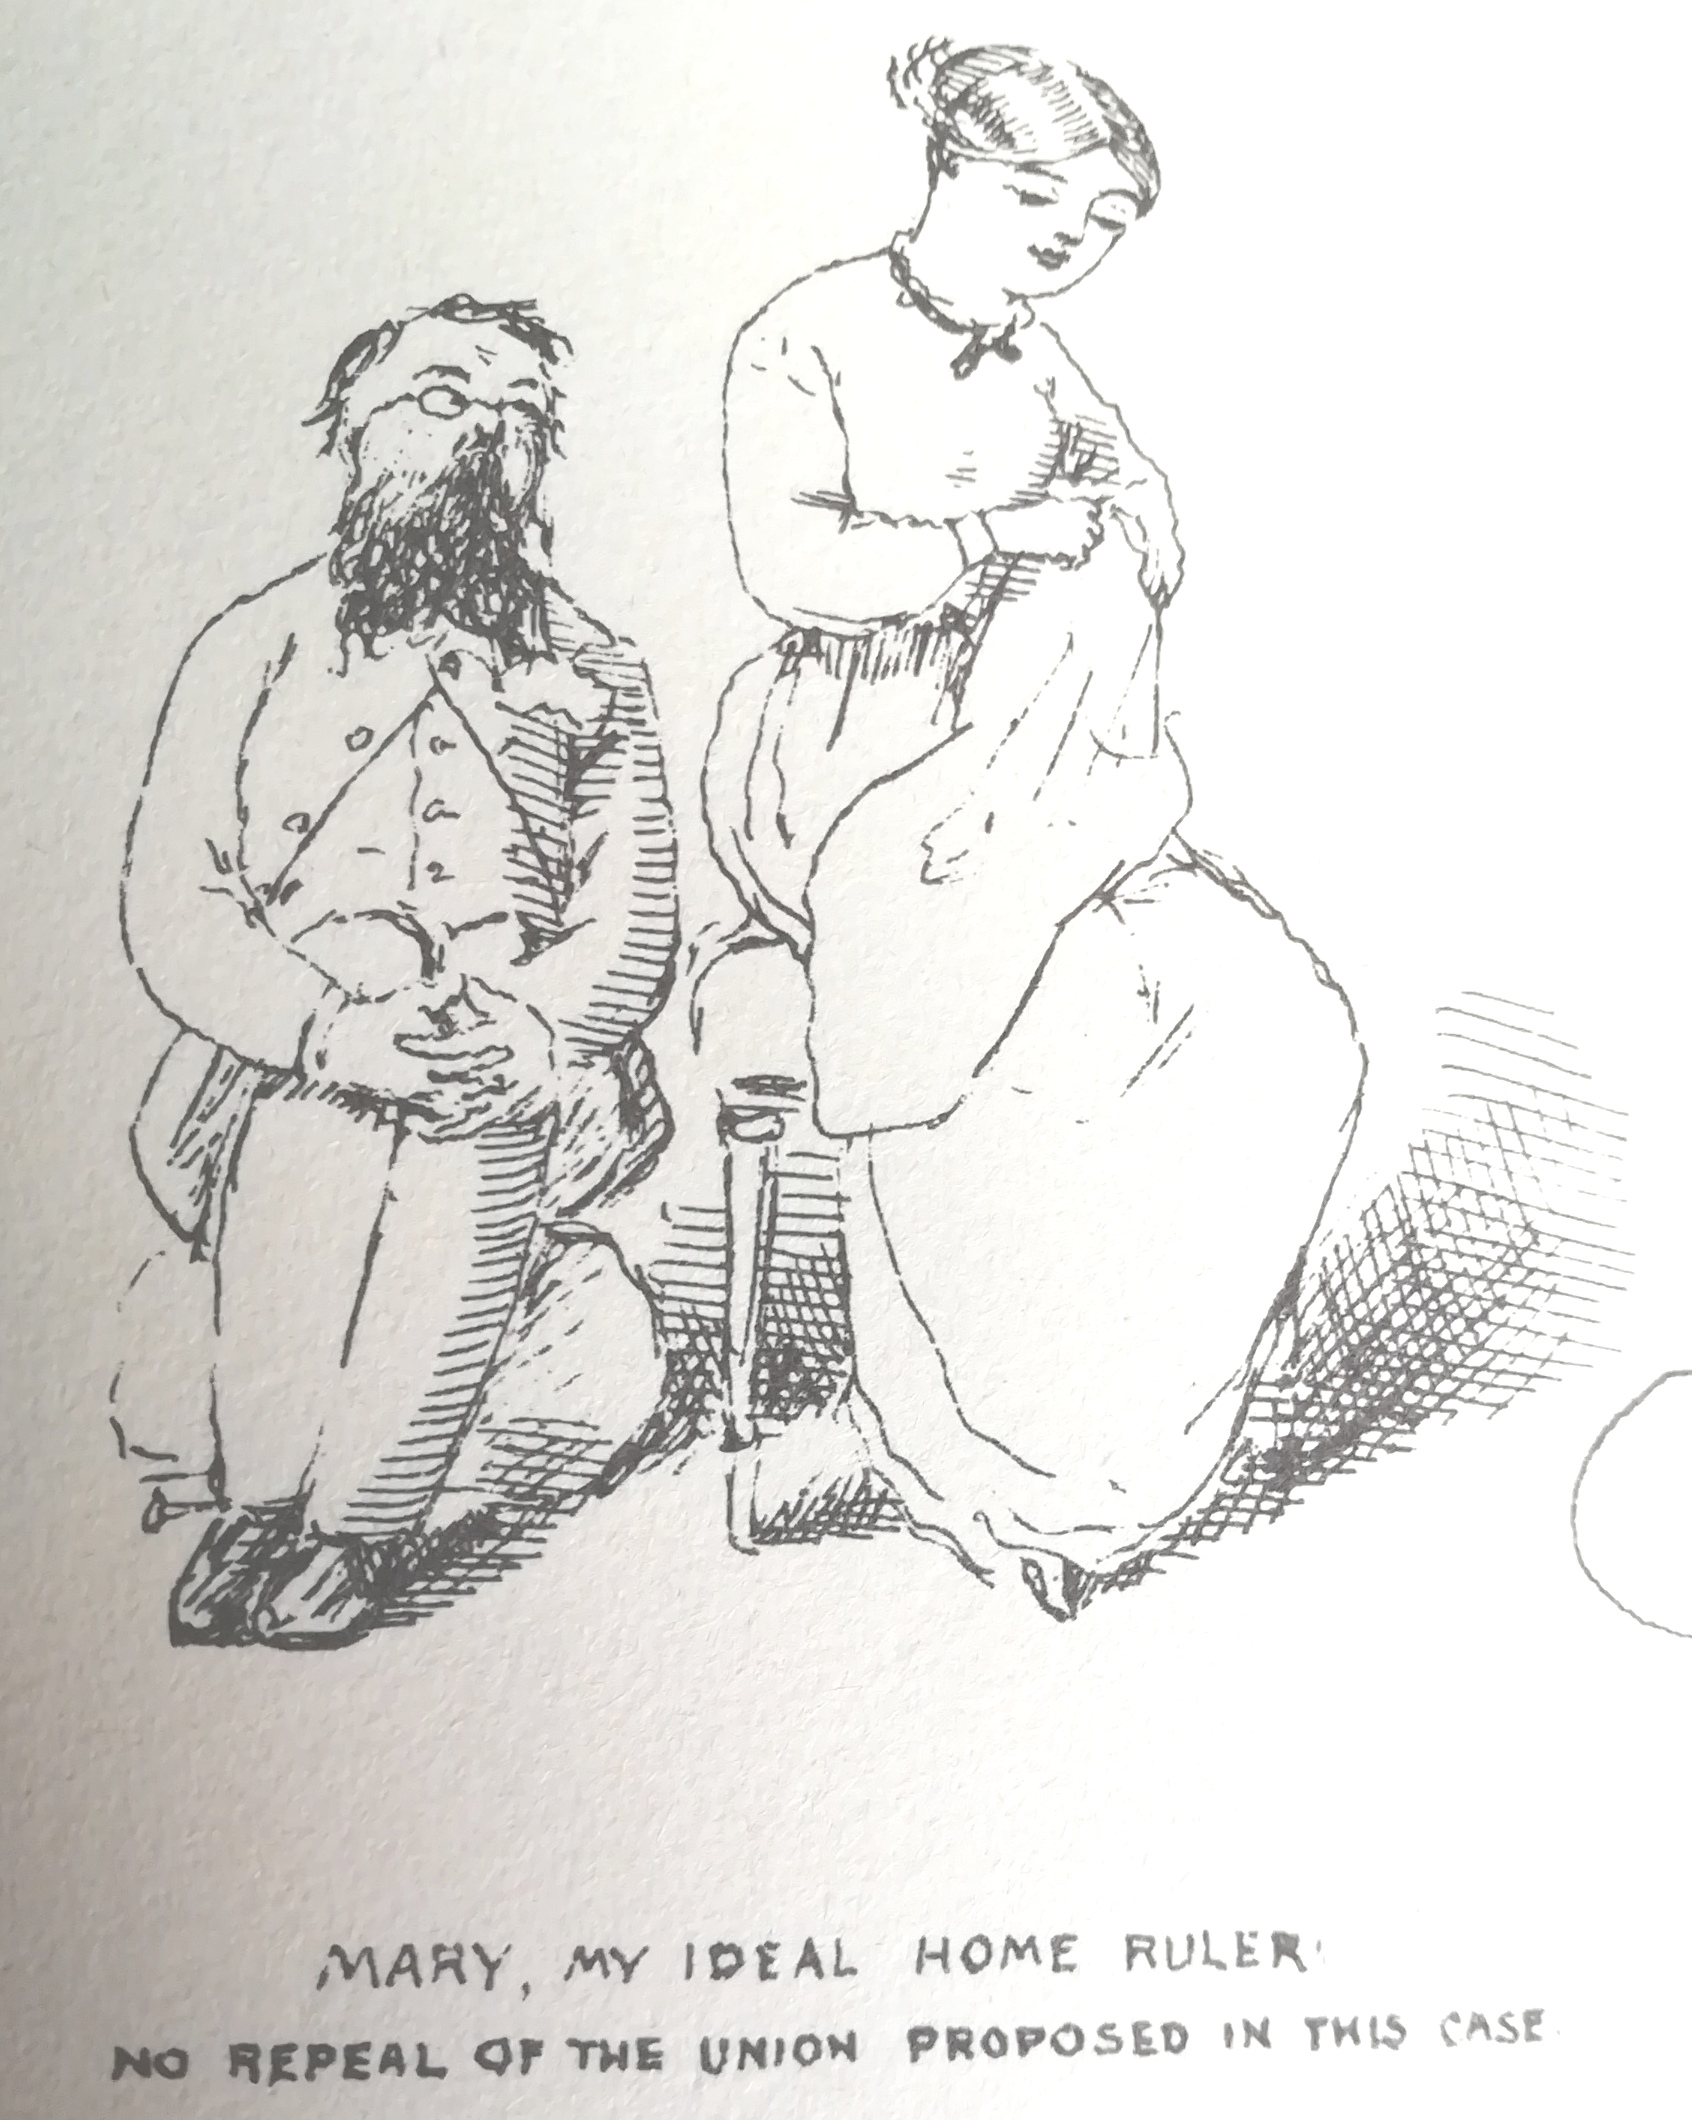 Line drawing of Charles and Mary Doyle by Charles Altamont Doyle